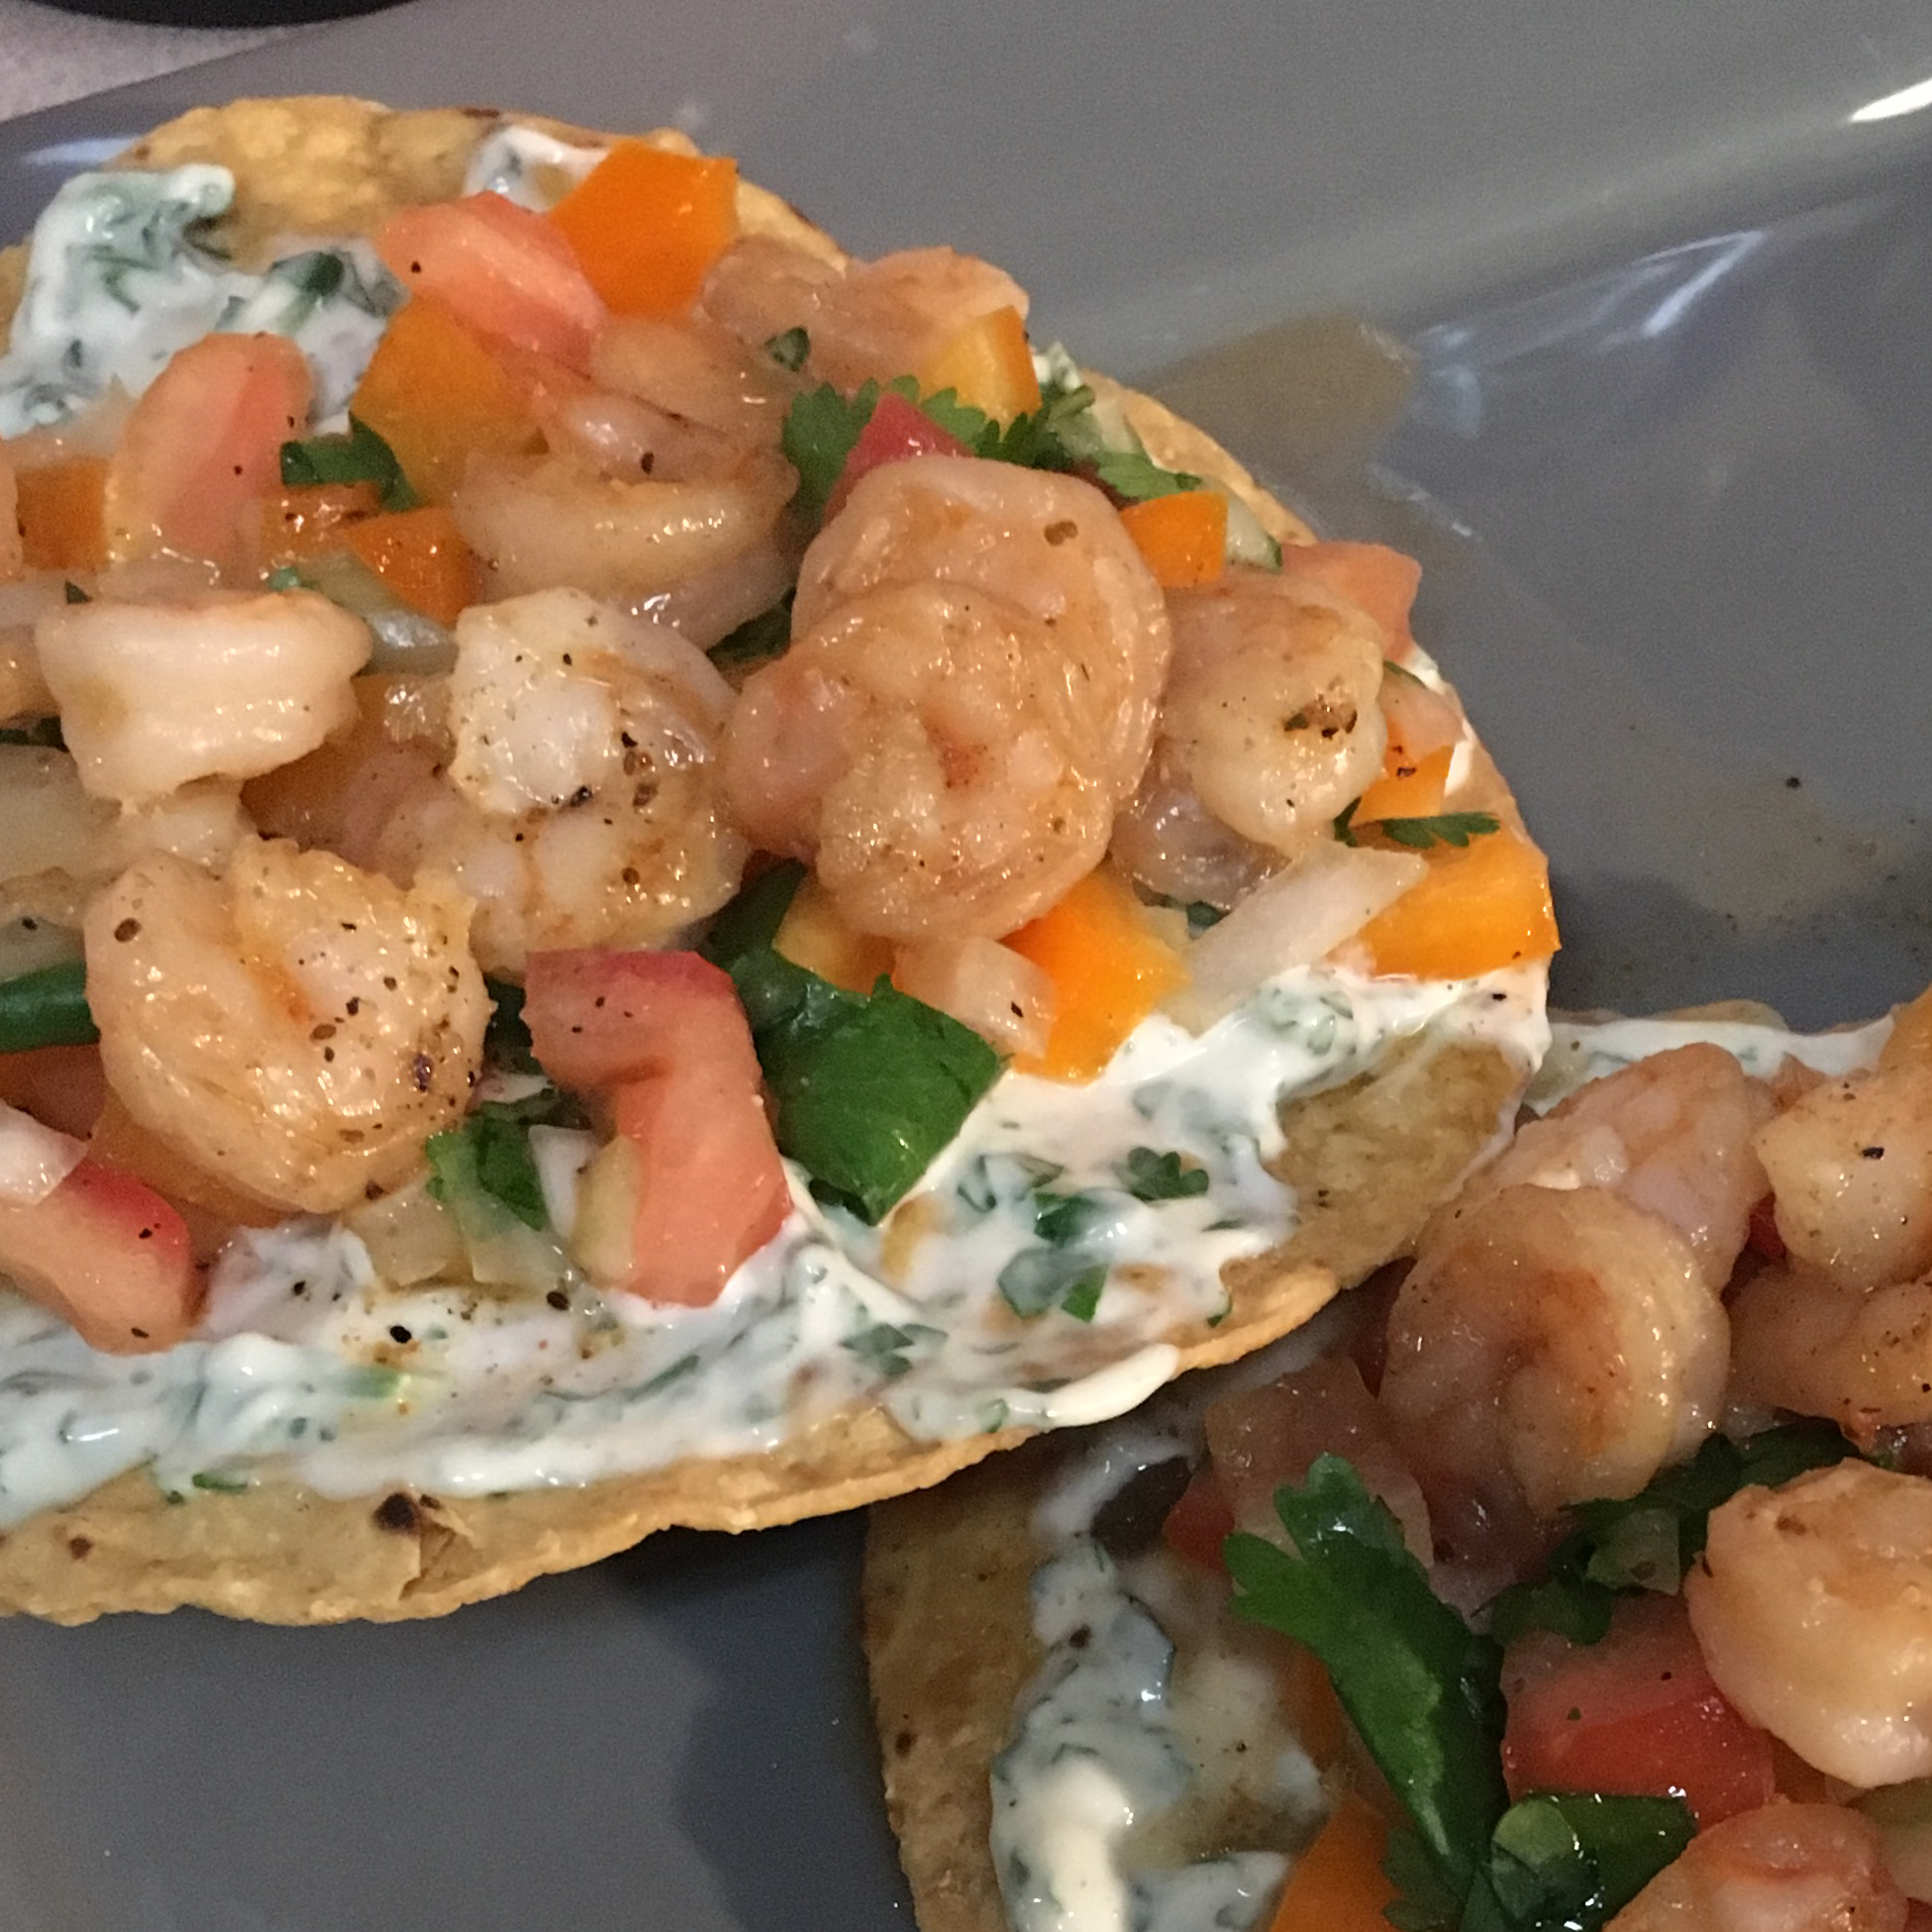 "Quick and easy, these tostadas are layered with homemade salsa, shrimp, and avocado. Shisafest says, ""My aunt wowed me with this simple, yet delicious shrimp tostada recipe. It is very simple to make and everyone asks for more! I use garlic salt for the salt!"""